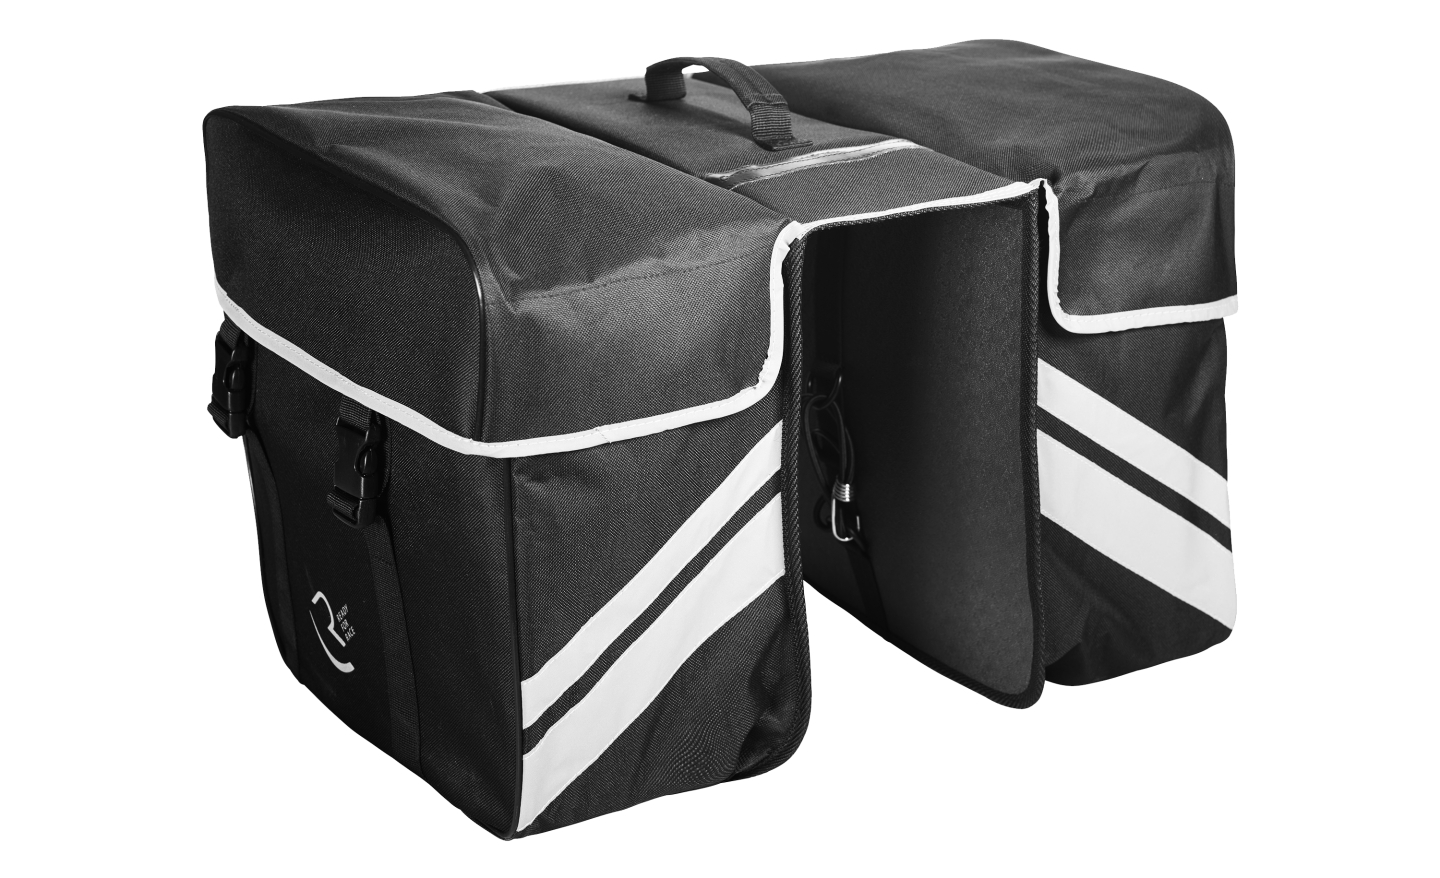 BISAGE RFR REAR CARRIER BAG DOUBLE BLACK 14048